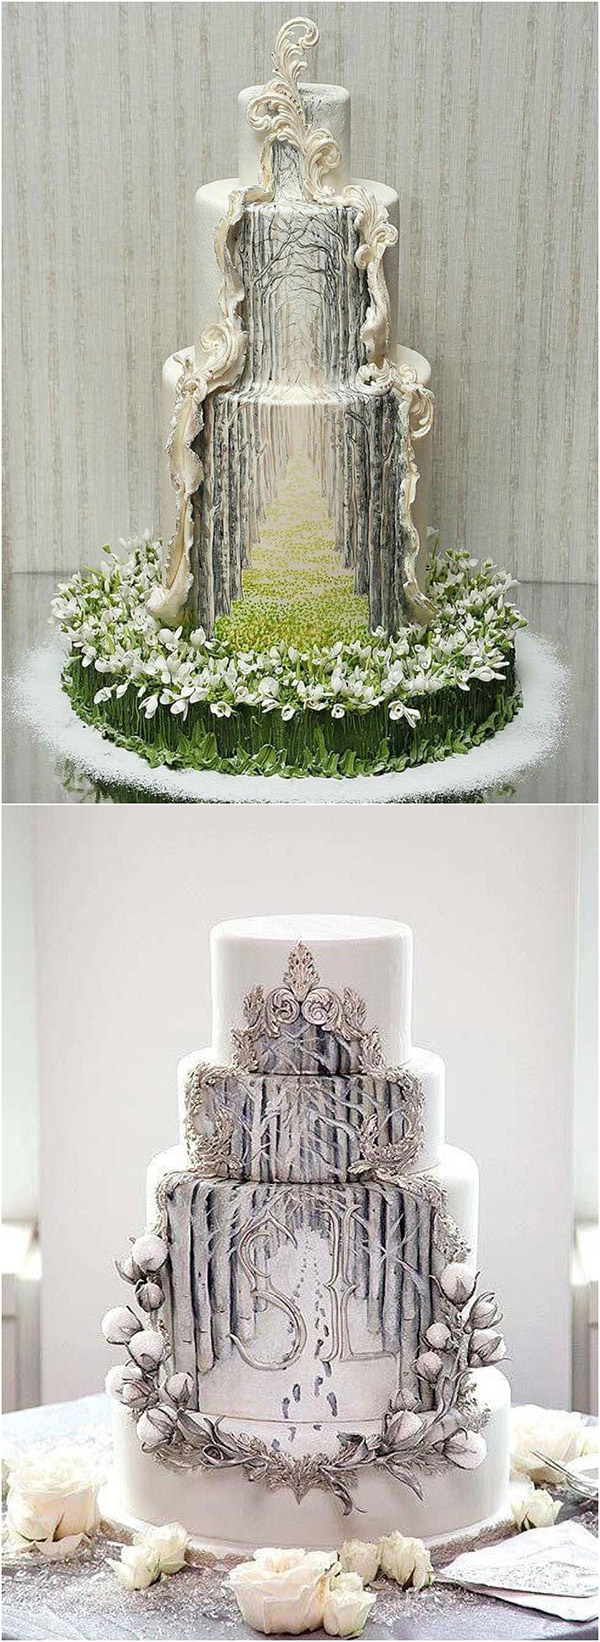 Famous Forest Themed Wedding Decorations Crest - Wedding Idea 2018 ...